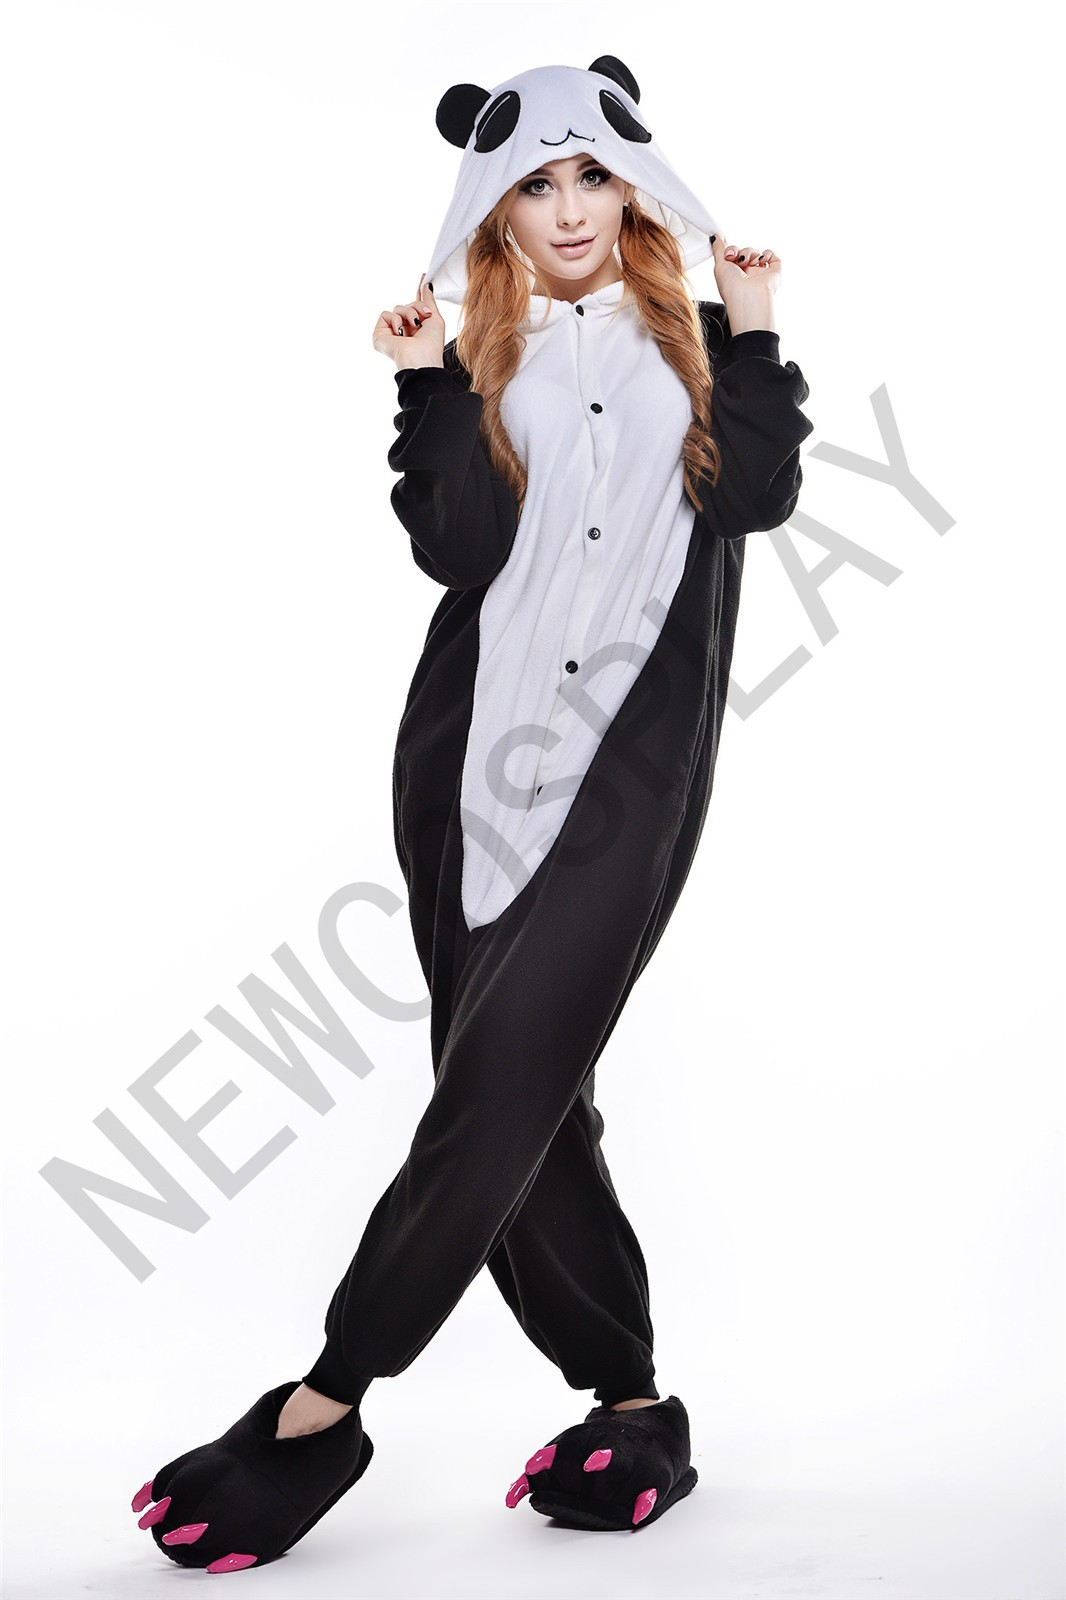 Red Eye Panda onesie by NEWCOSPLAY ONESIE